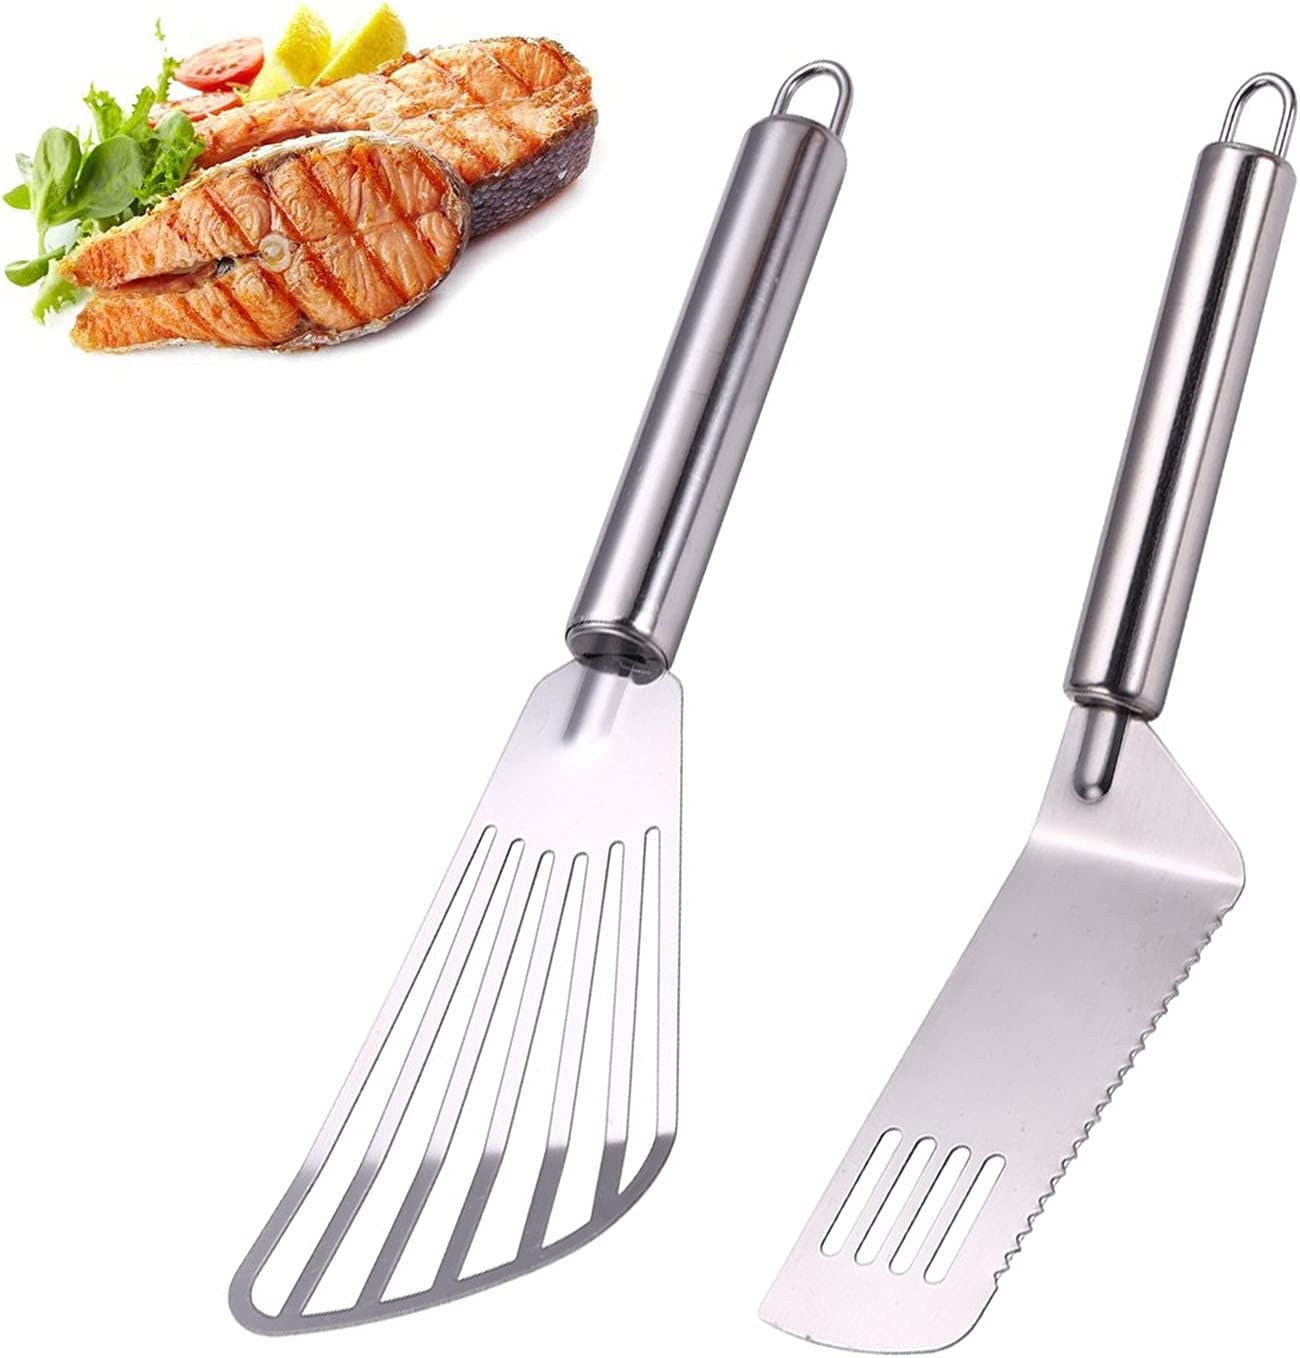 Ardanlingke Fish Regular discount Spatula 2 Pack Spatulas Stainless Steel 1 Courier shipping free shipping Set